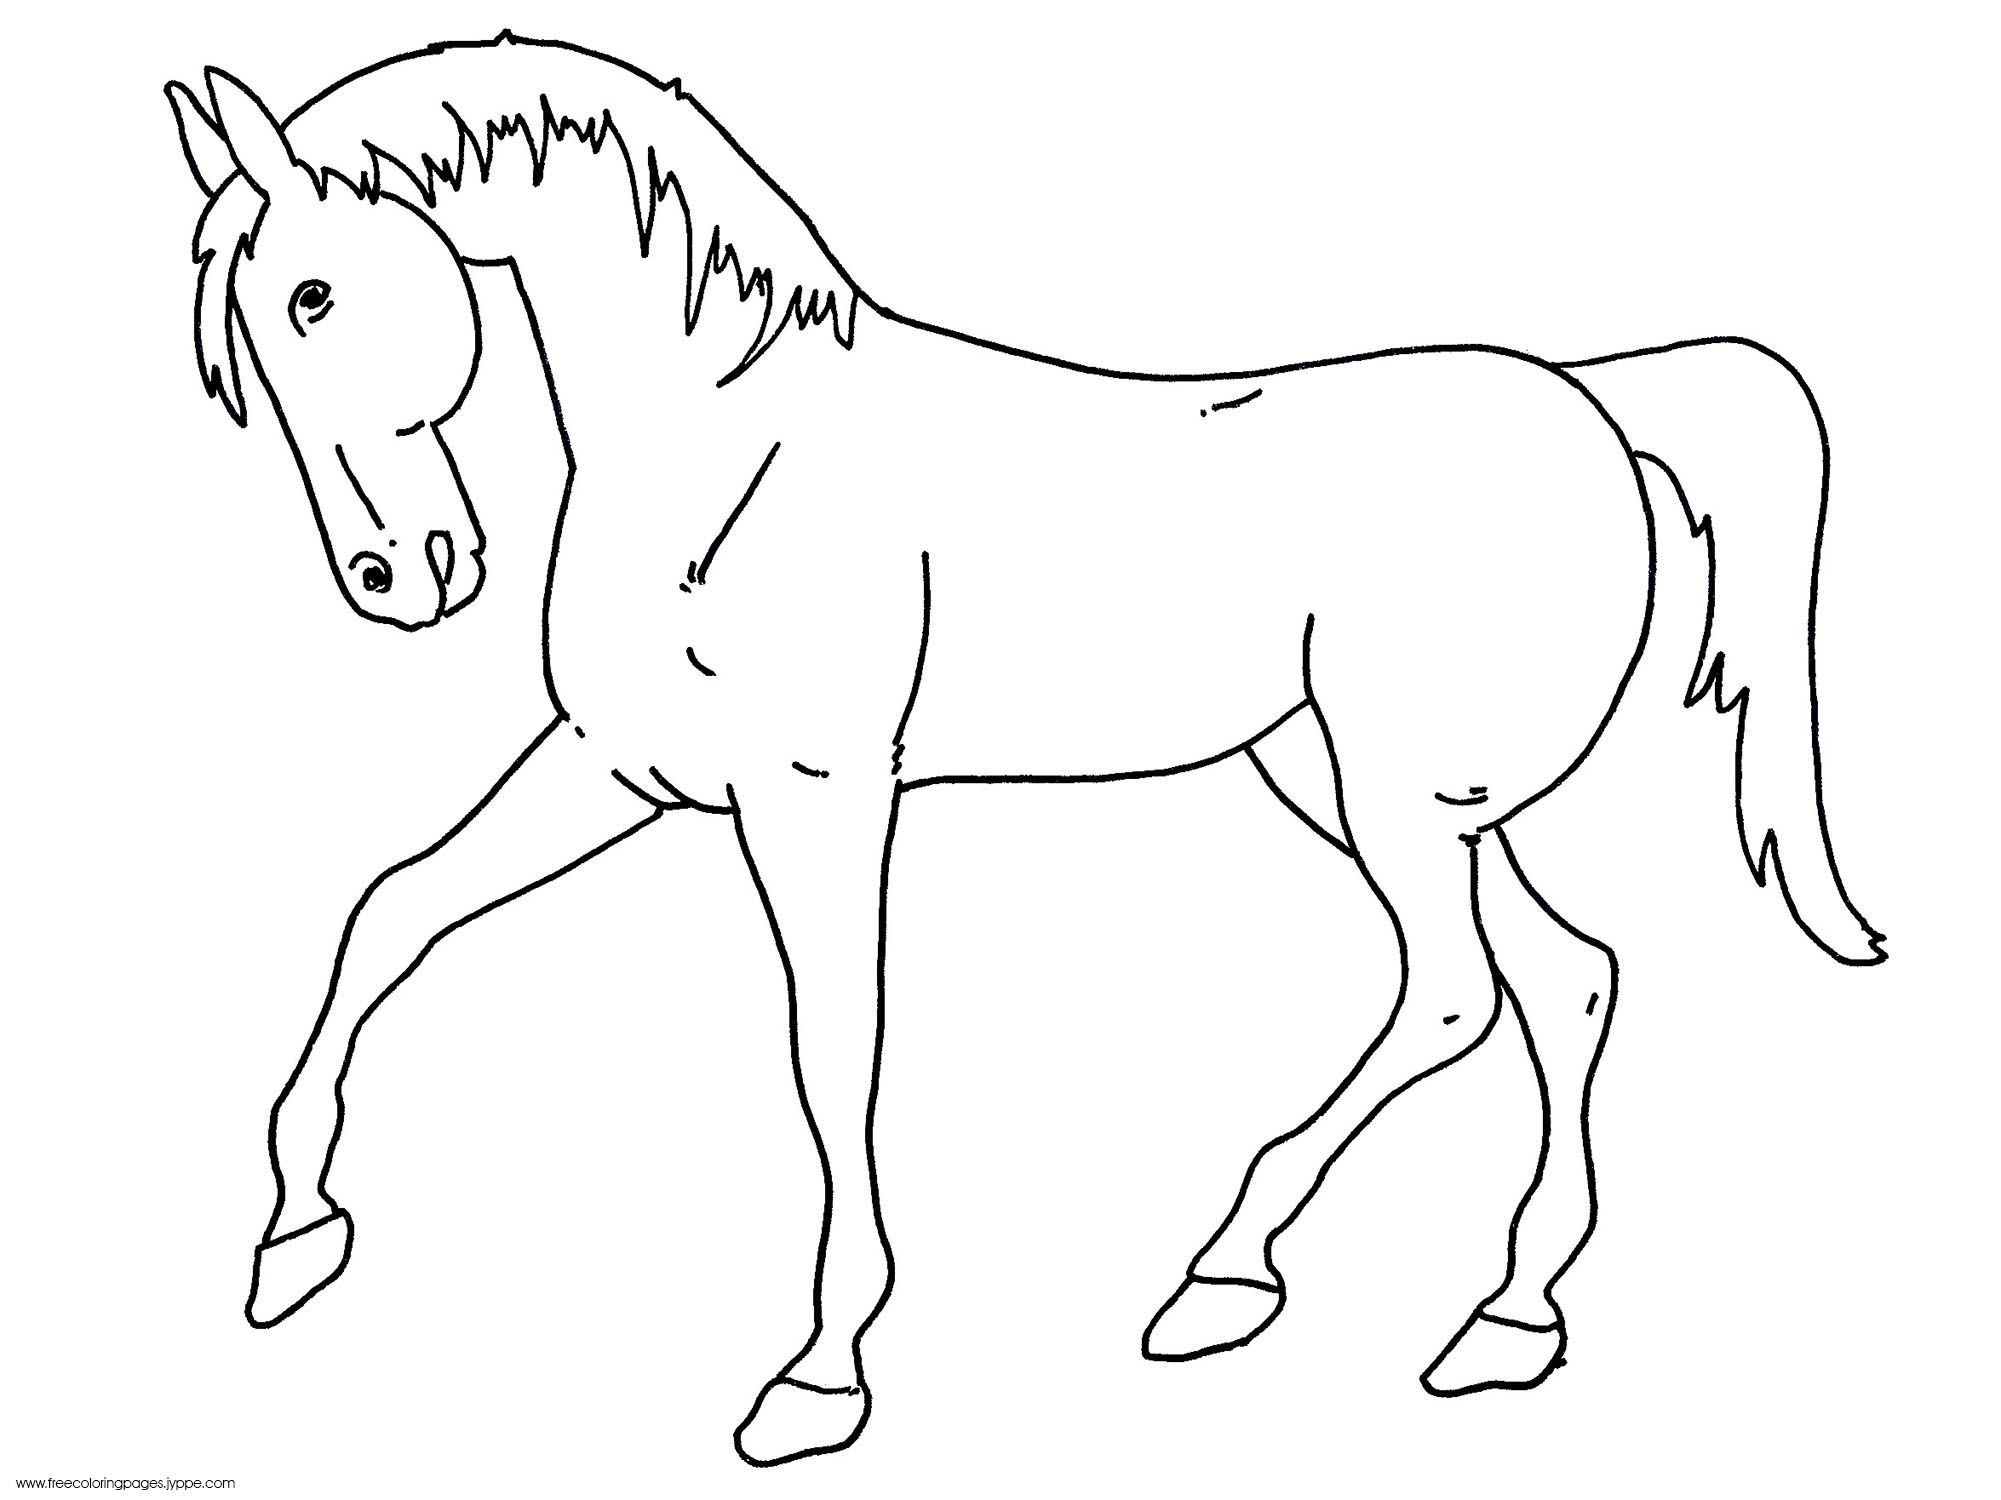 horses pictures to print fun horse coloring pages for your kids printable print horses pictures to 1 1